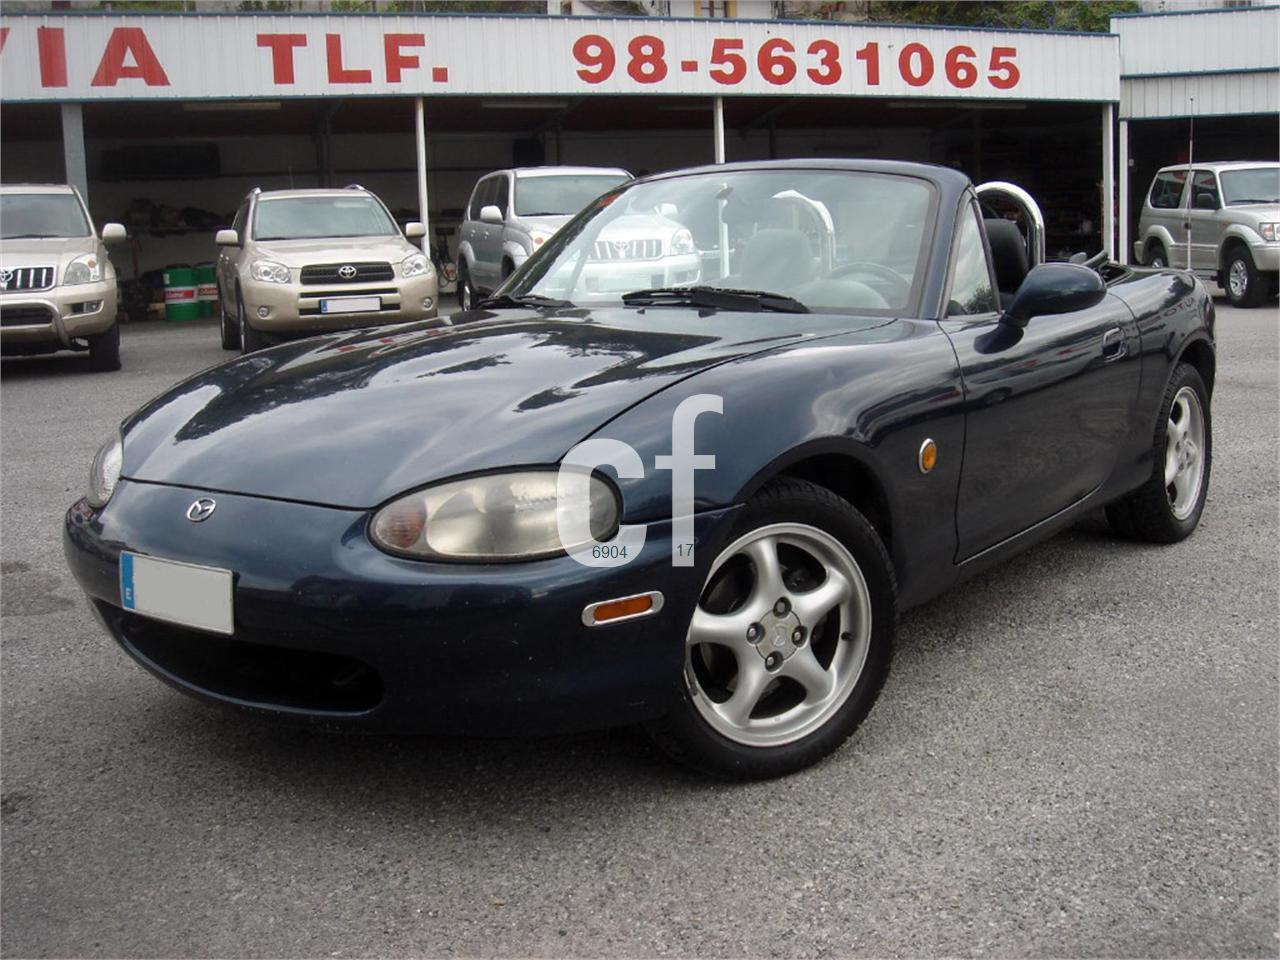 voitures mazda mx 5 miata occasion espagne. Black Bedroom Furniture Sets. Home Design Ideas